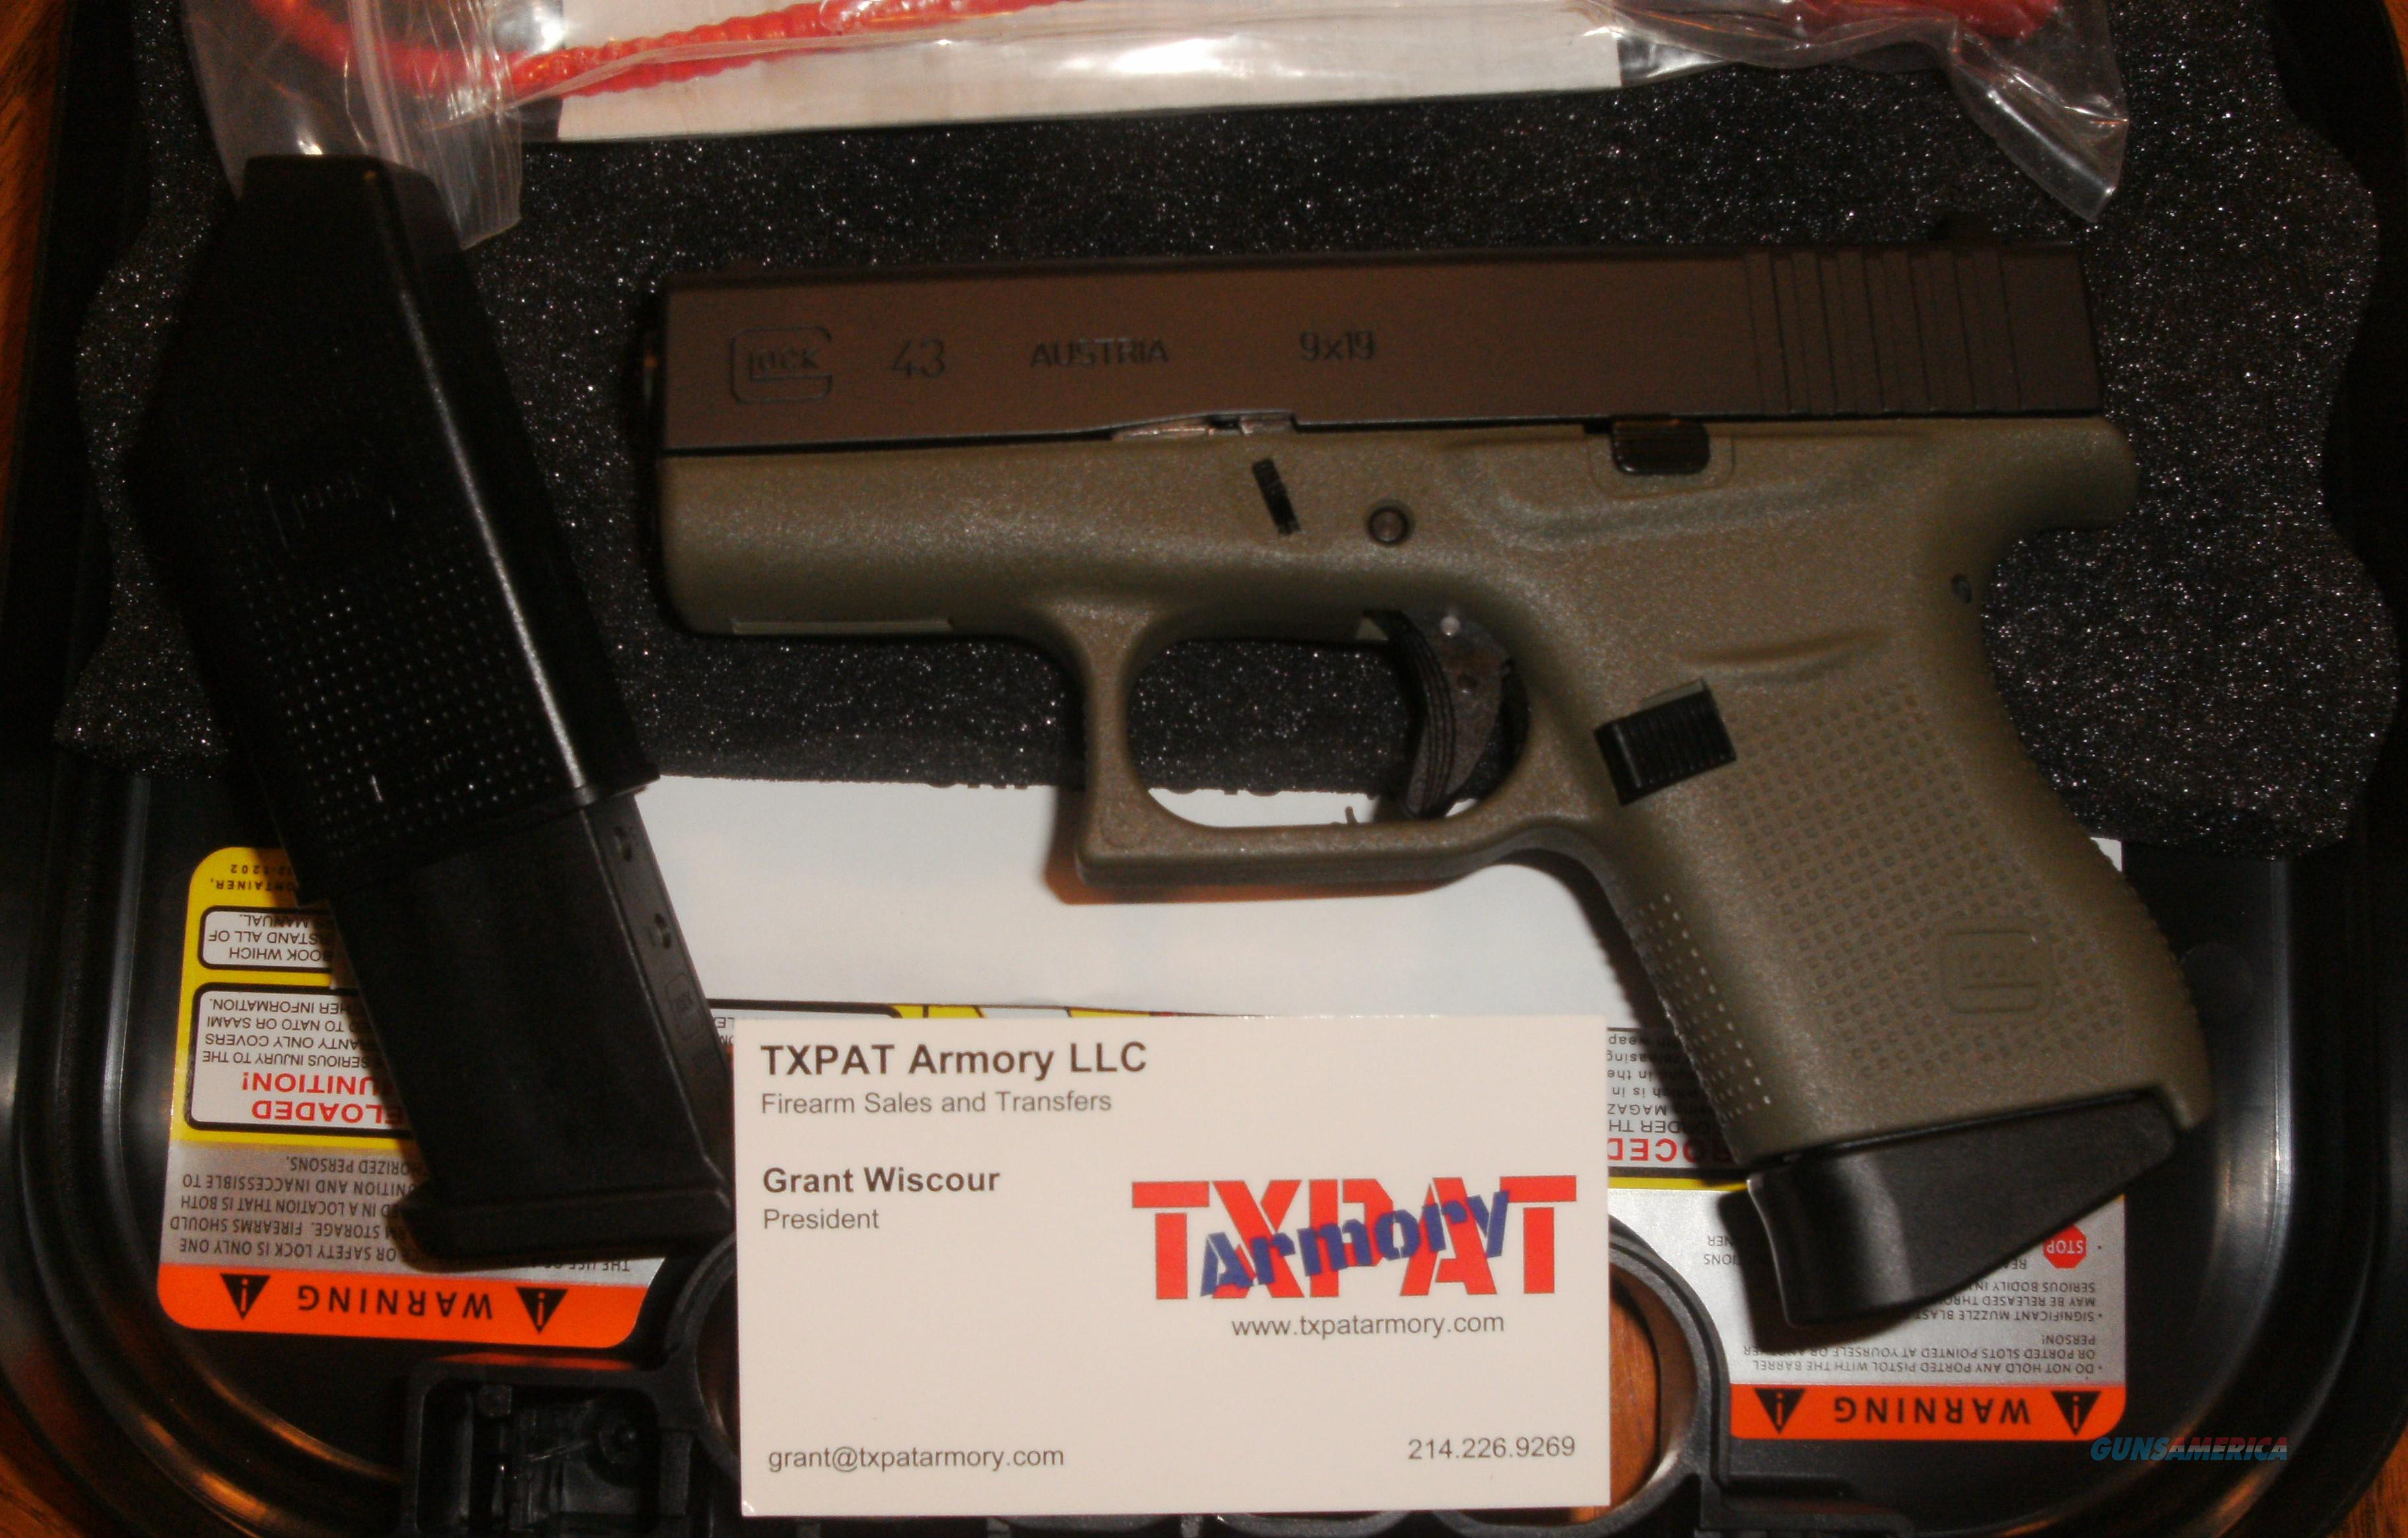 GLOCK 43 - FACTORY GREEN FRAME - 9MM CCW - NEW IN BOX - HURRY THIS ONE'S A BEAUTY  Guns > Pistols > Glock Pistols > 43